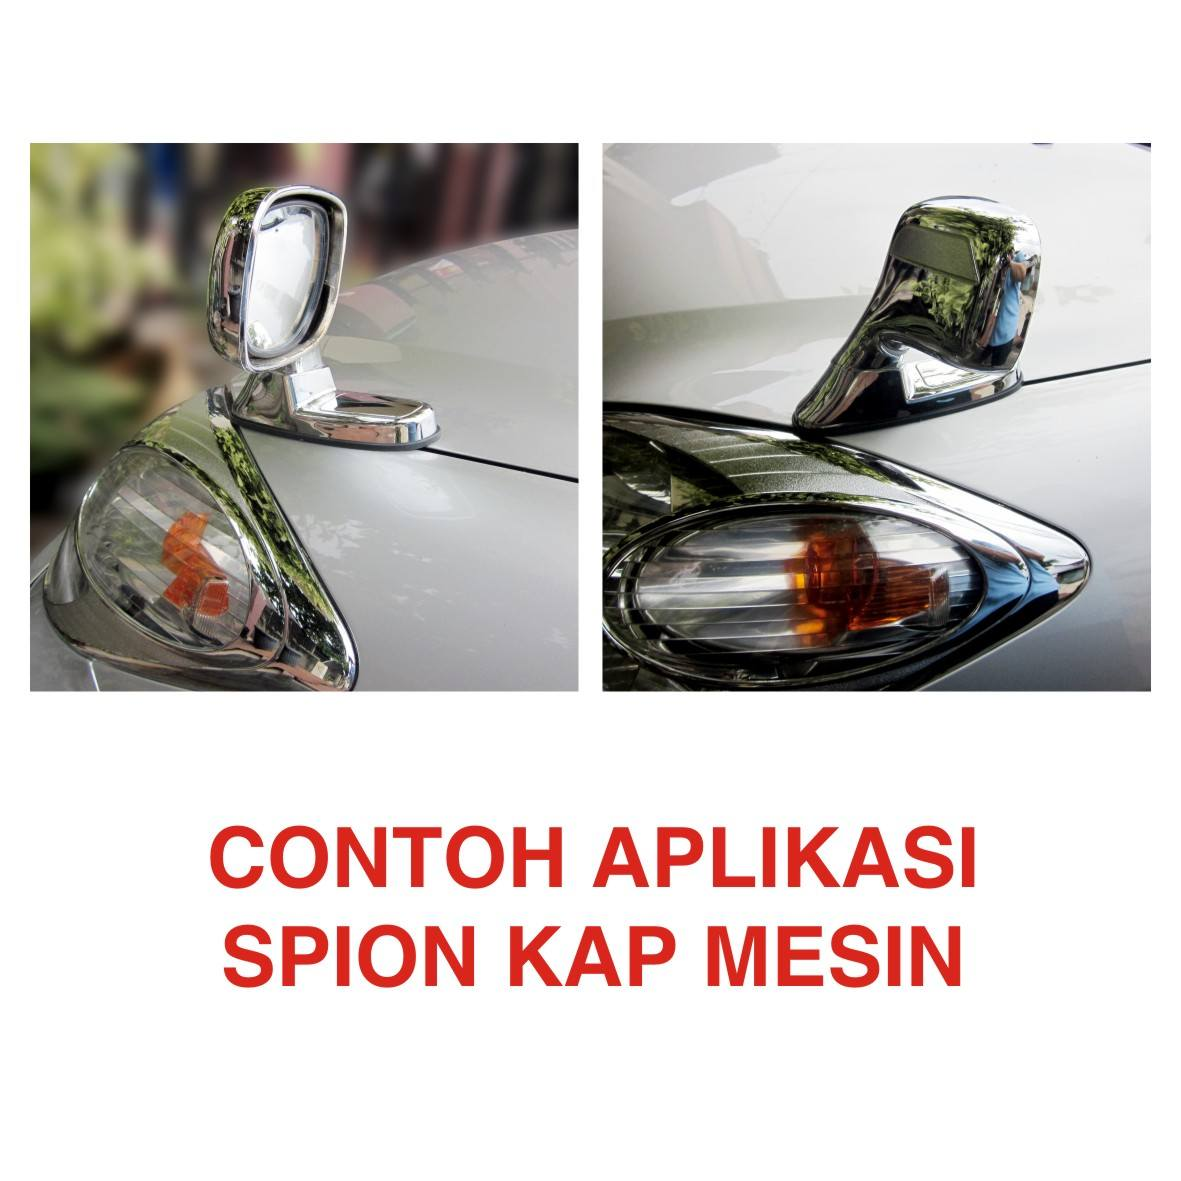 spion kap mesin